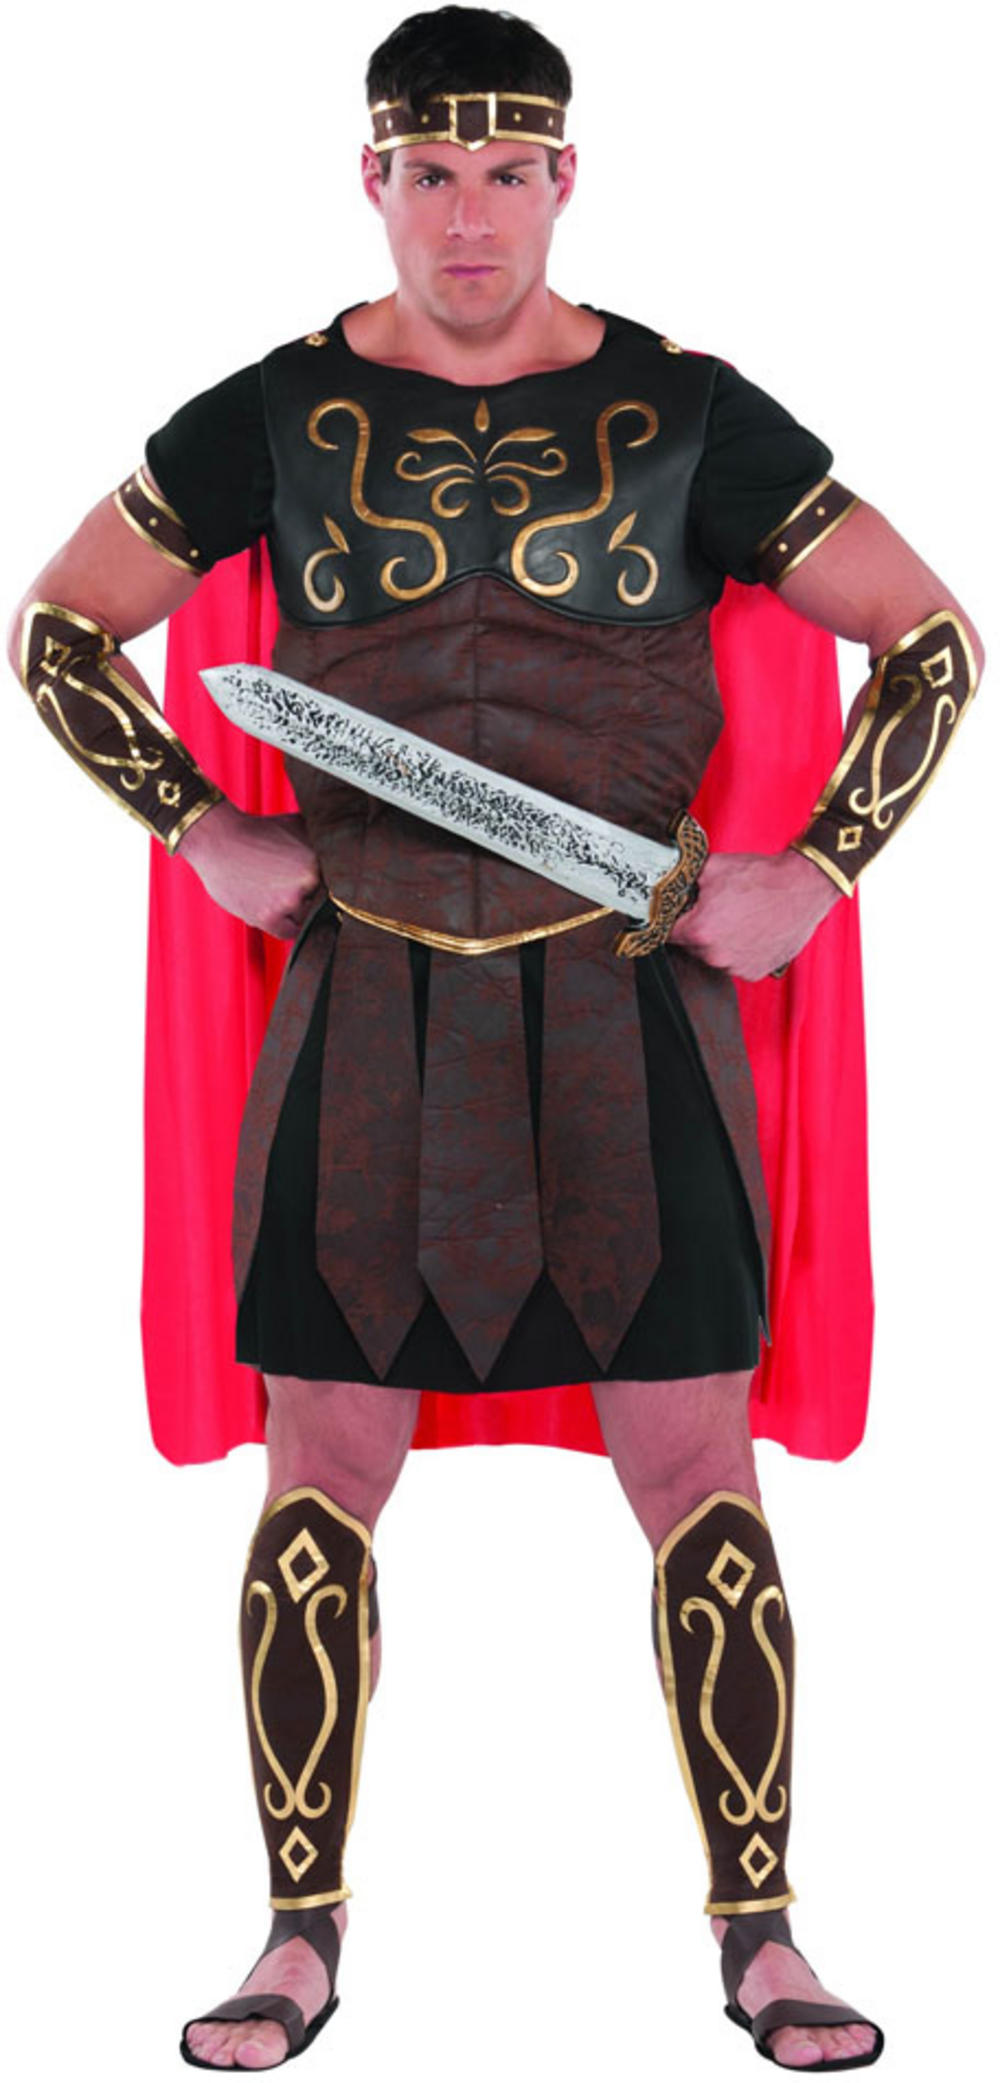 Men's Centurion Fancy Dress Costume